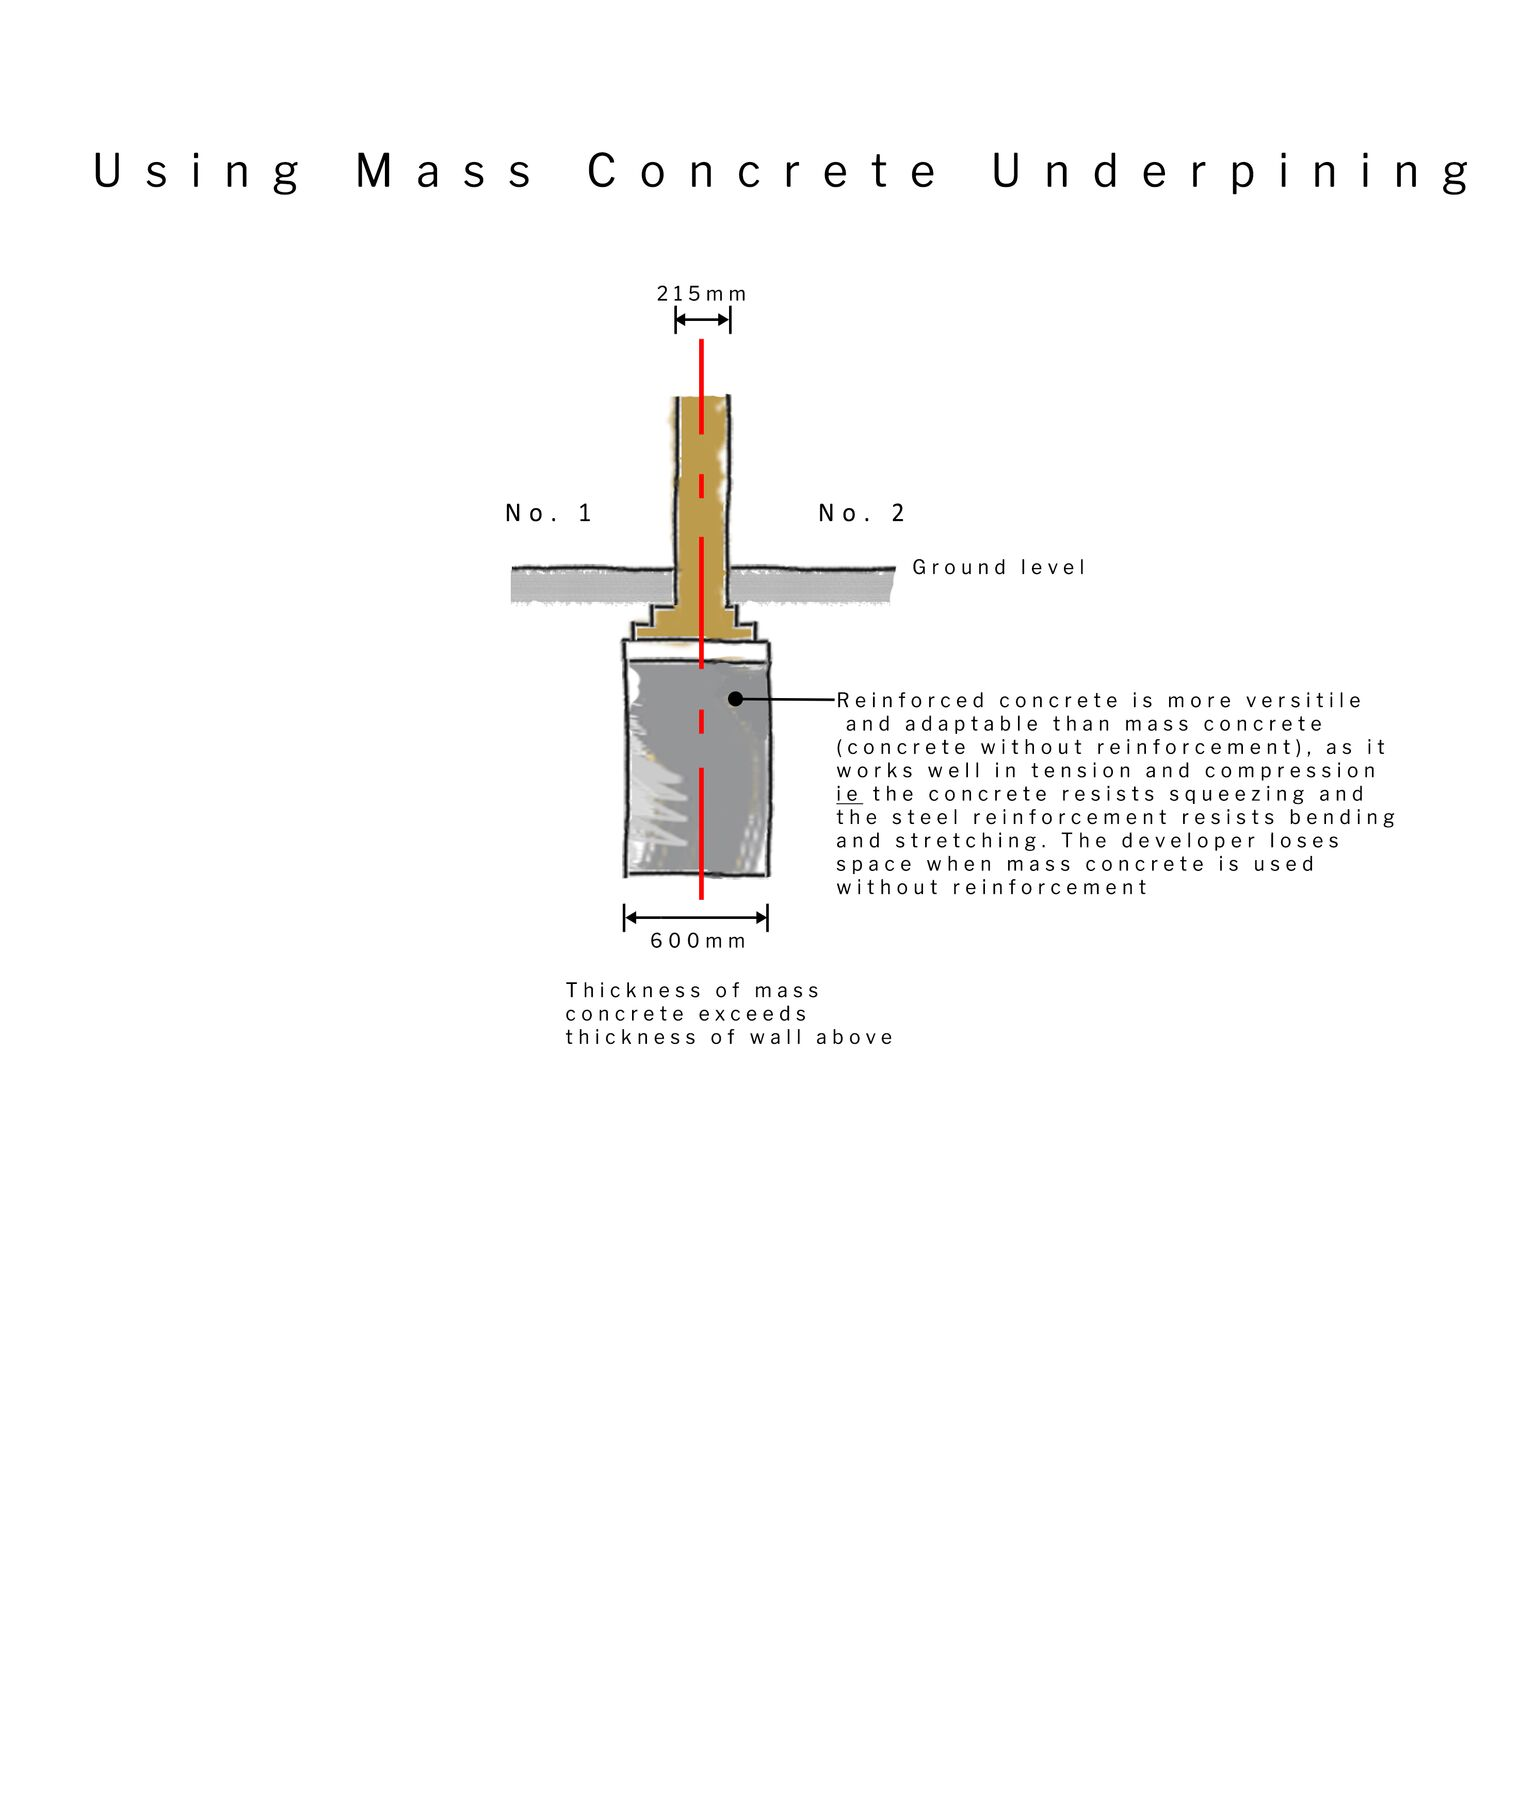 Fig 51A/6 - Mass concrete underpinning Diagram